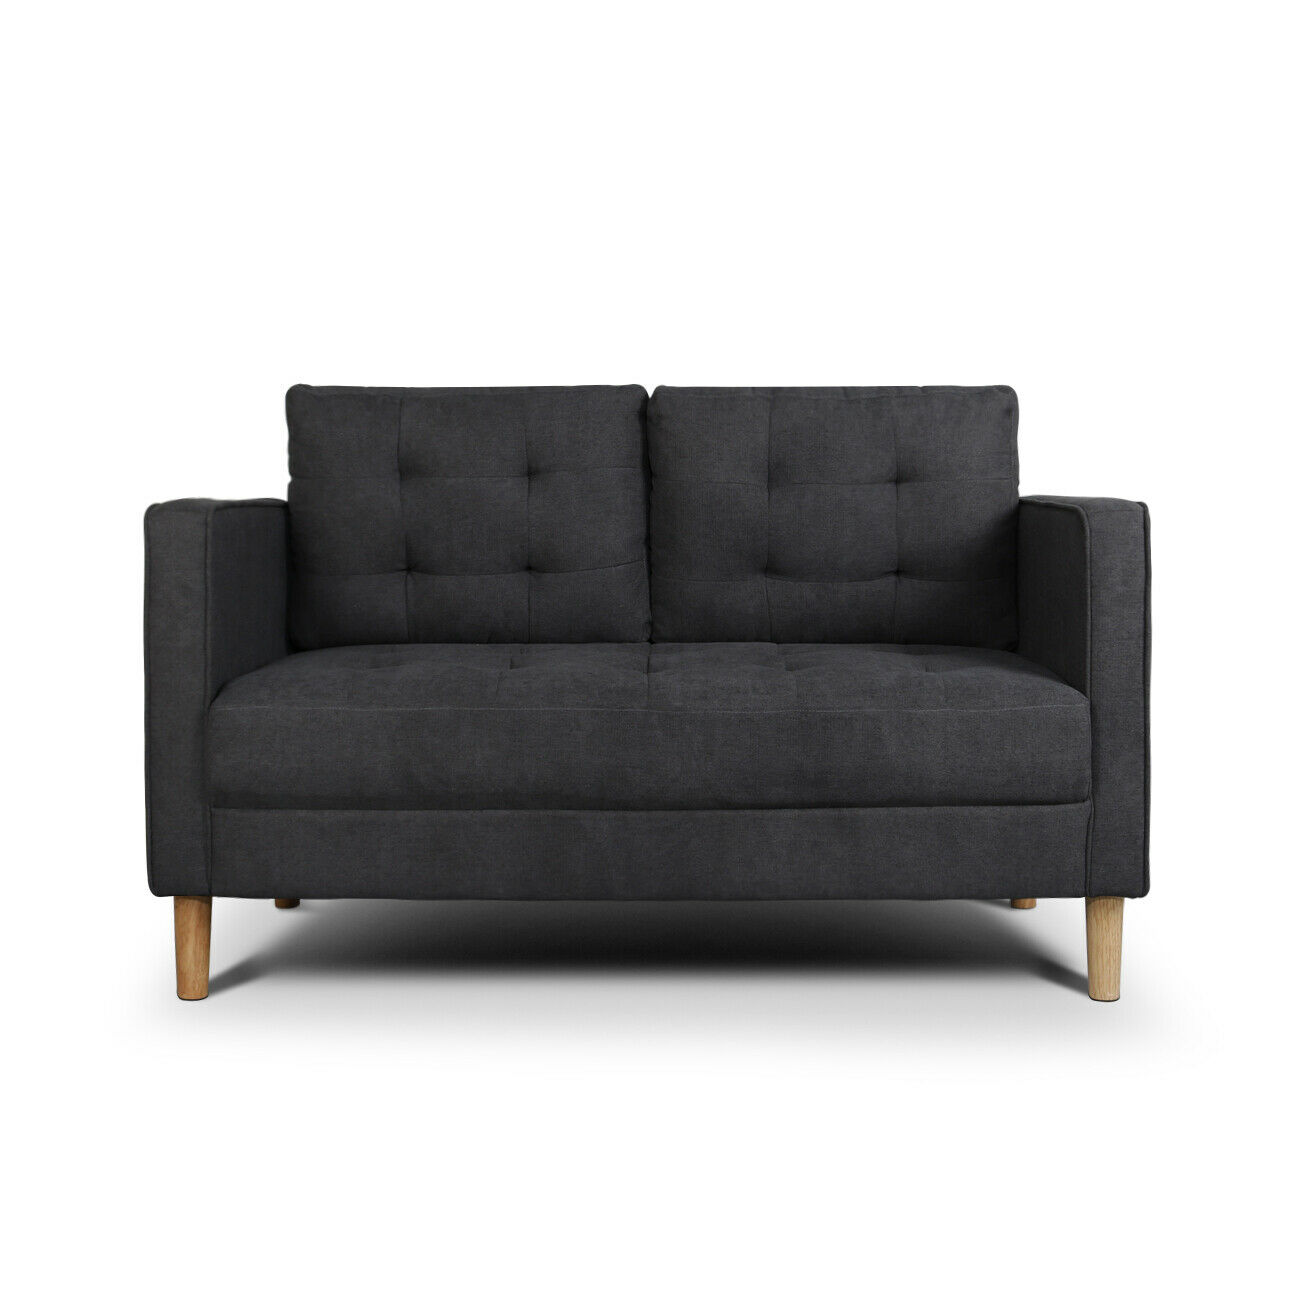 Modern Classic Loveseat Sofa, Upholstered Sofa/Couch, Suitab